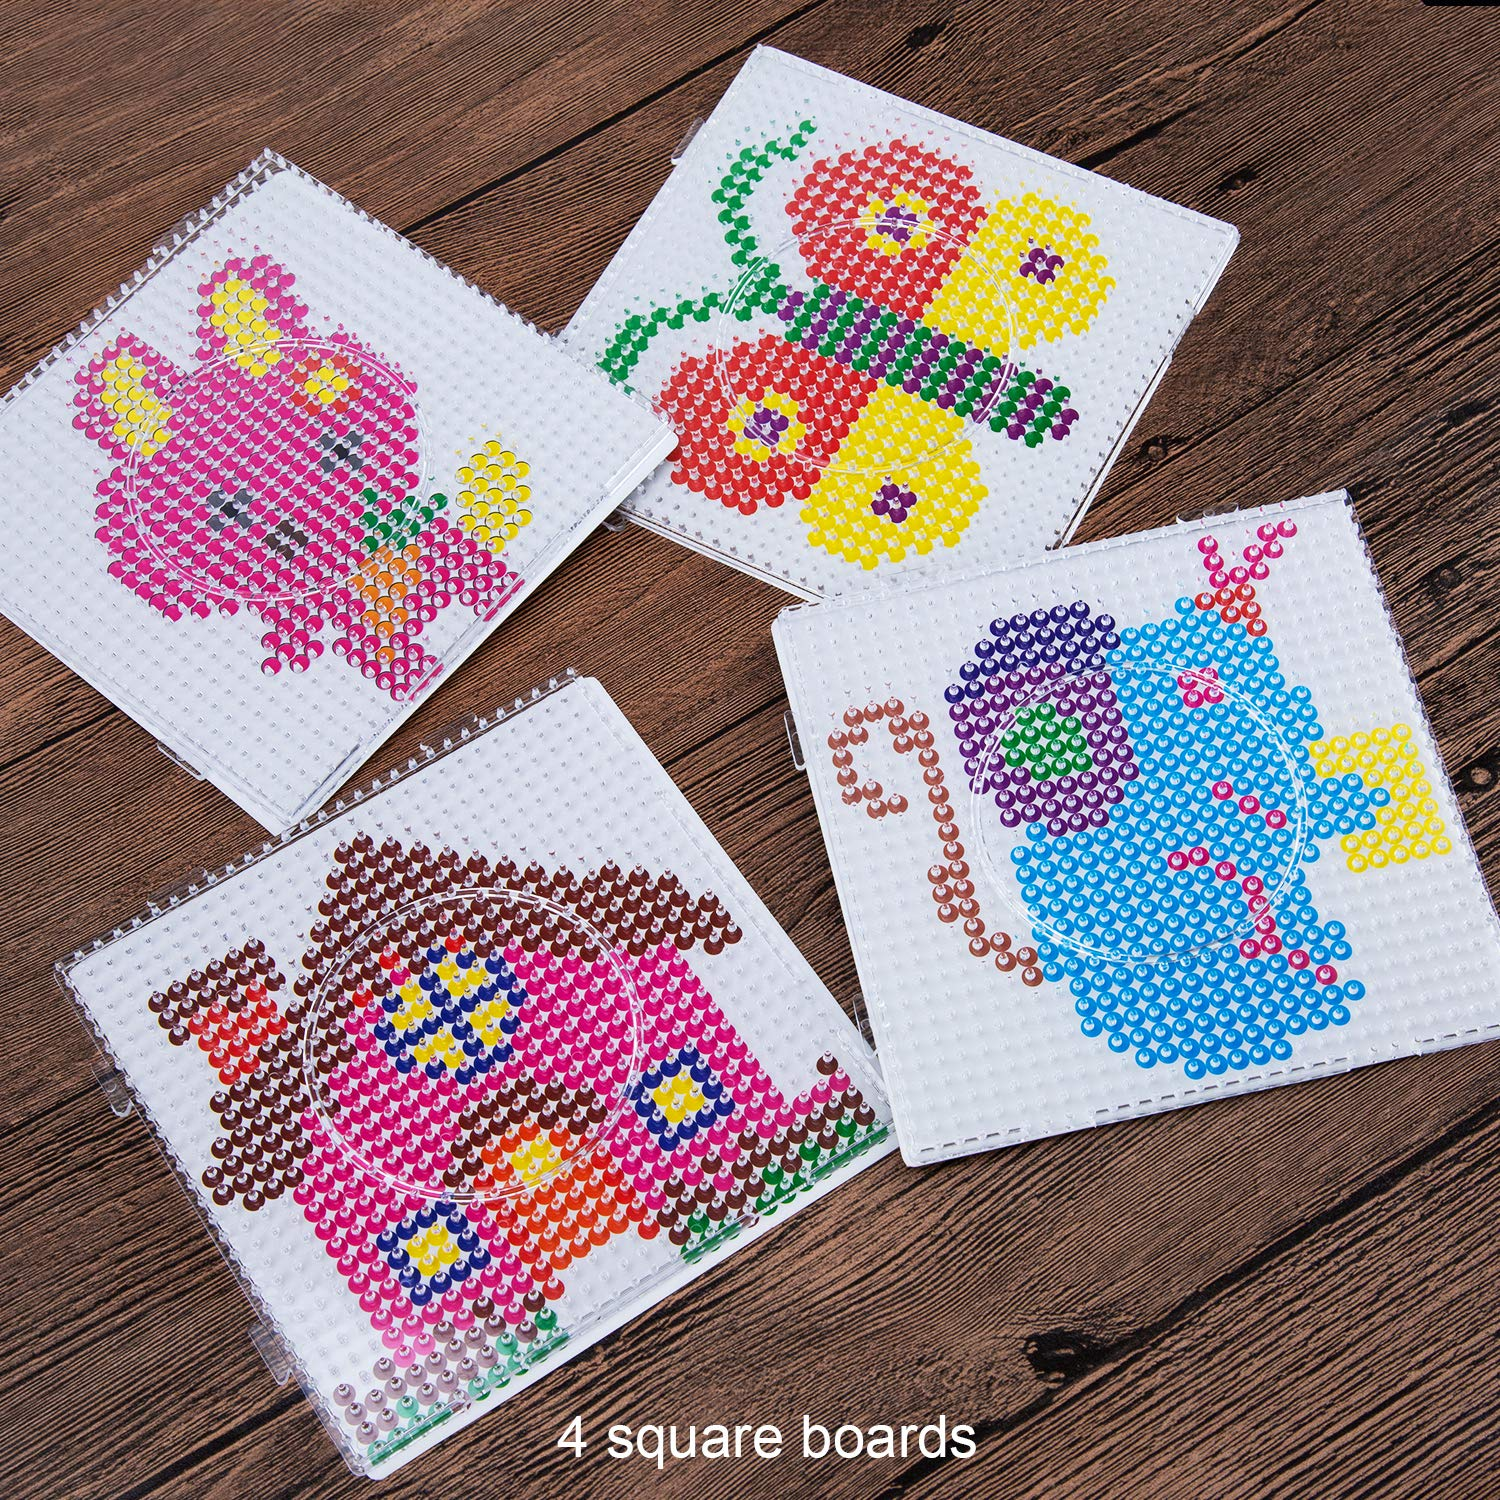 Square Round Hexagon Shape Pegboards with 6 Pattern Template Paper Cards and 2 White Tweezers for Children Craft Beads Supplies SAVITA 6 Pieces 5mm Fuse Beads Boards Clear Plastic Pegboards Kit